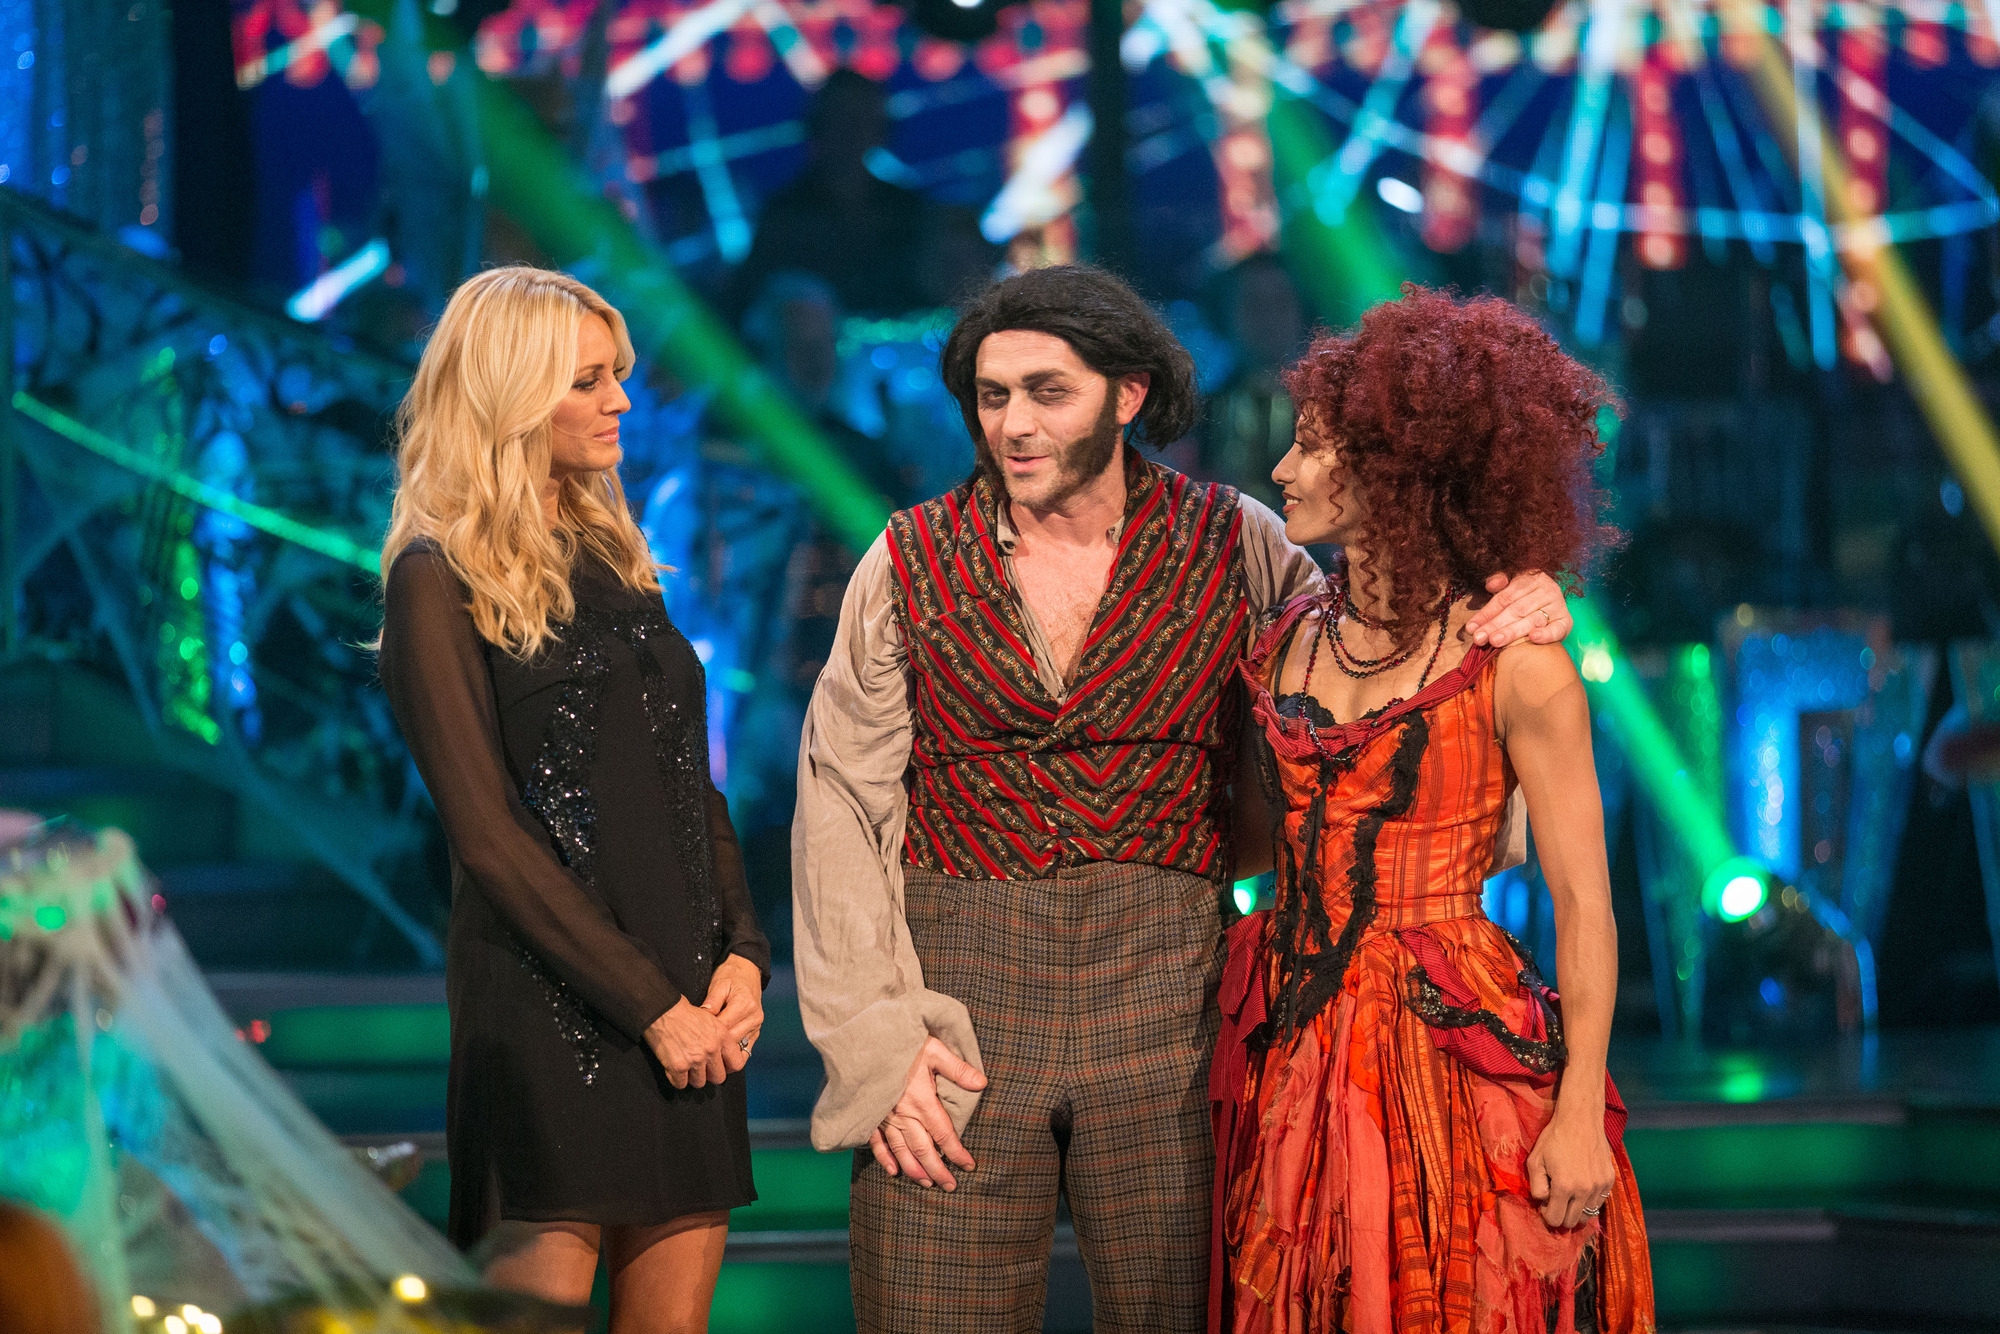 Strictly Come Dancing 2017 - TX 6 RESULTS SHOW